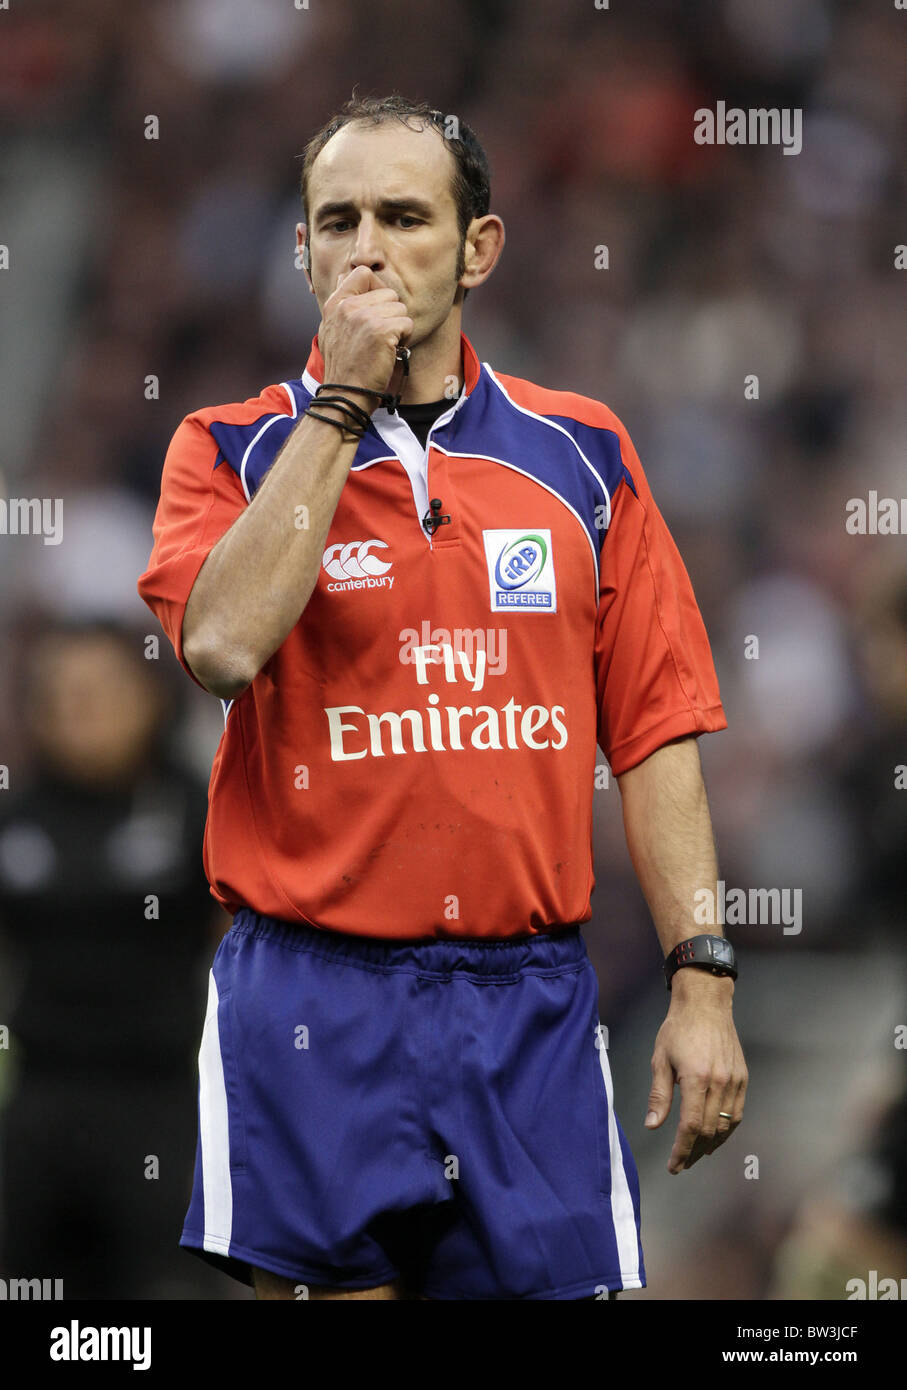 Romain Poite French Rugby Union Referee Twickenham Middlesex England Stock Photo Alamy